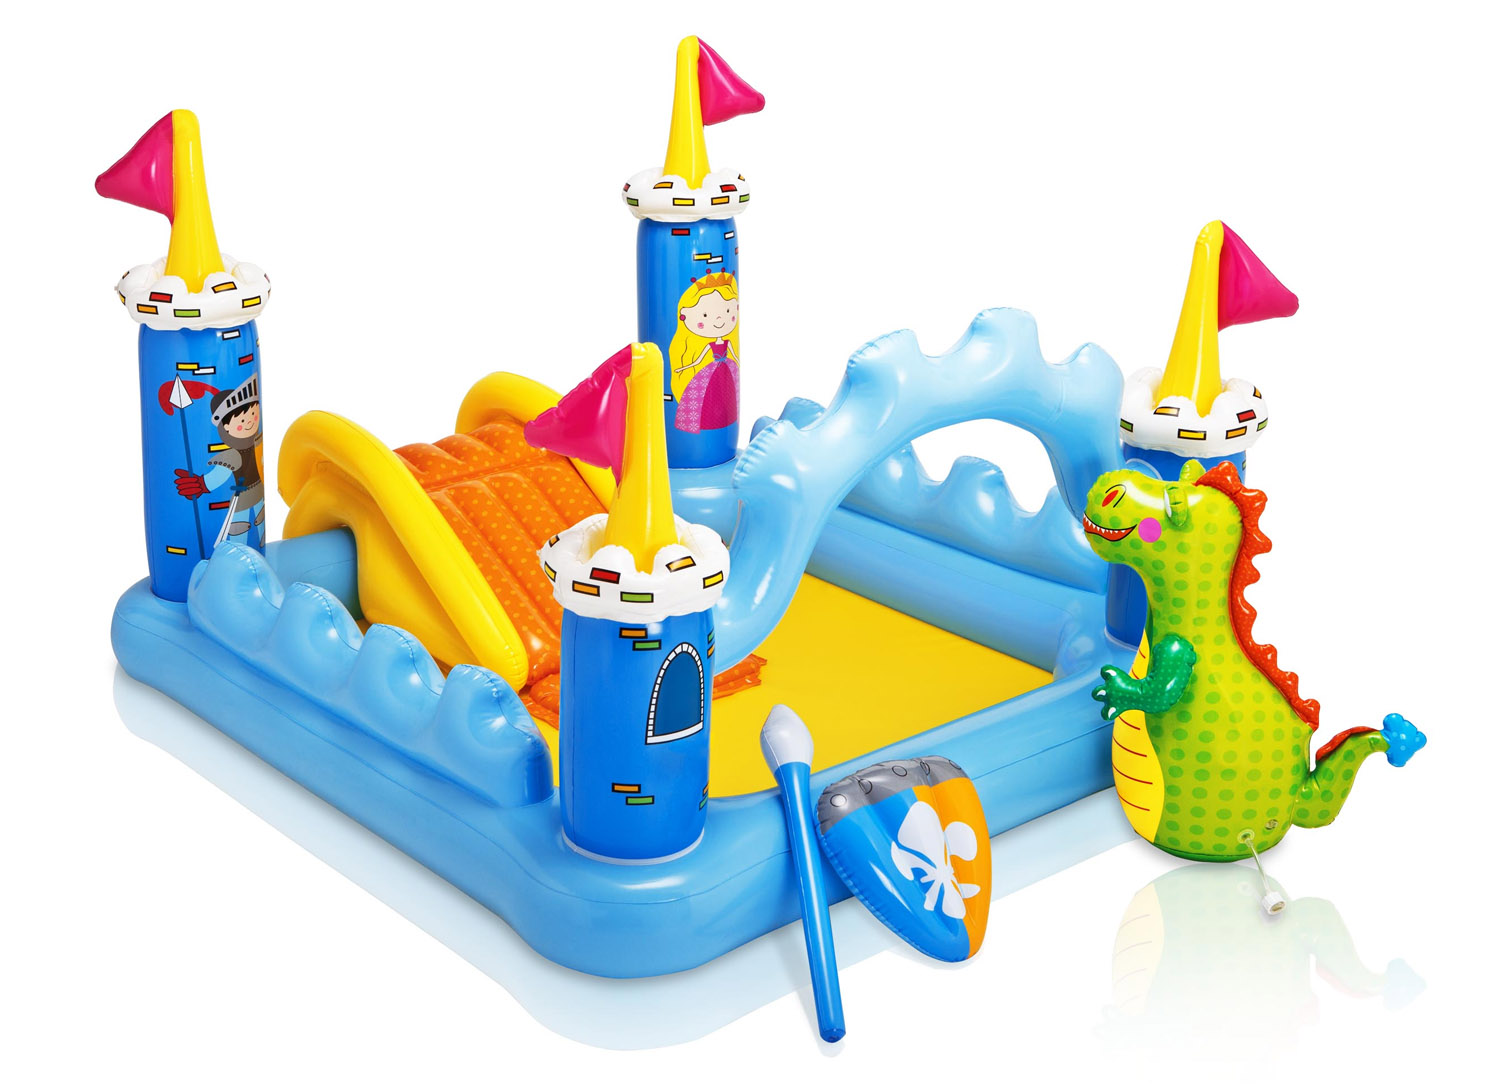 Click here to buy Intex Kids Inflatable Backyard Fantasy Castle Waterslide Play Park Pool Center by Intex.